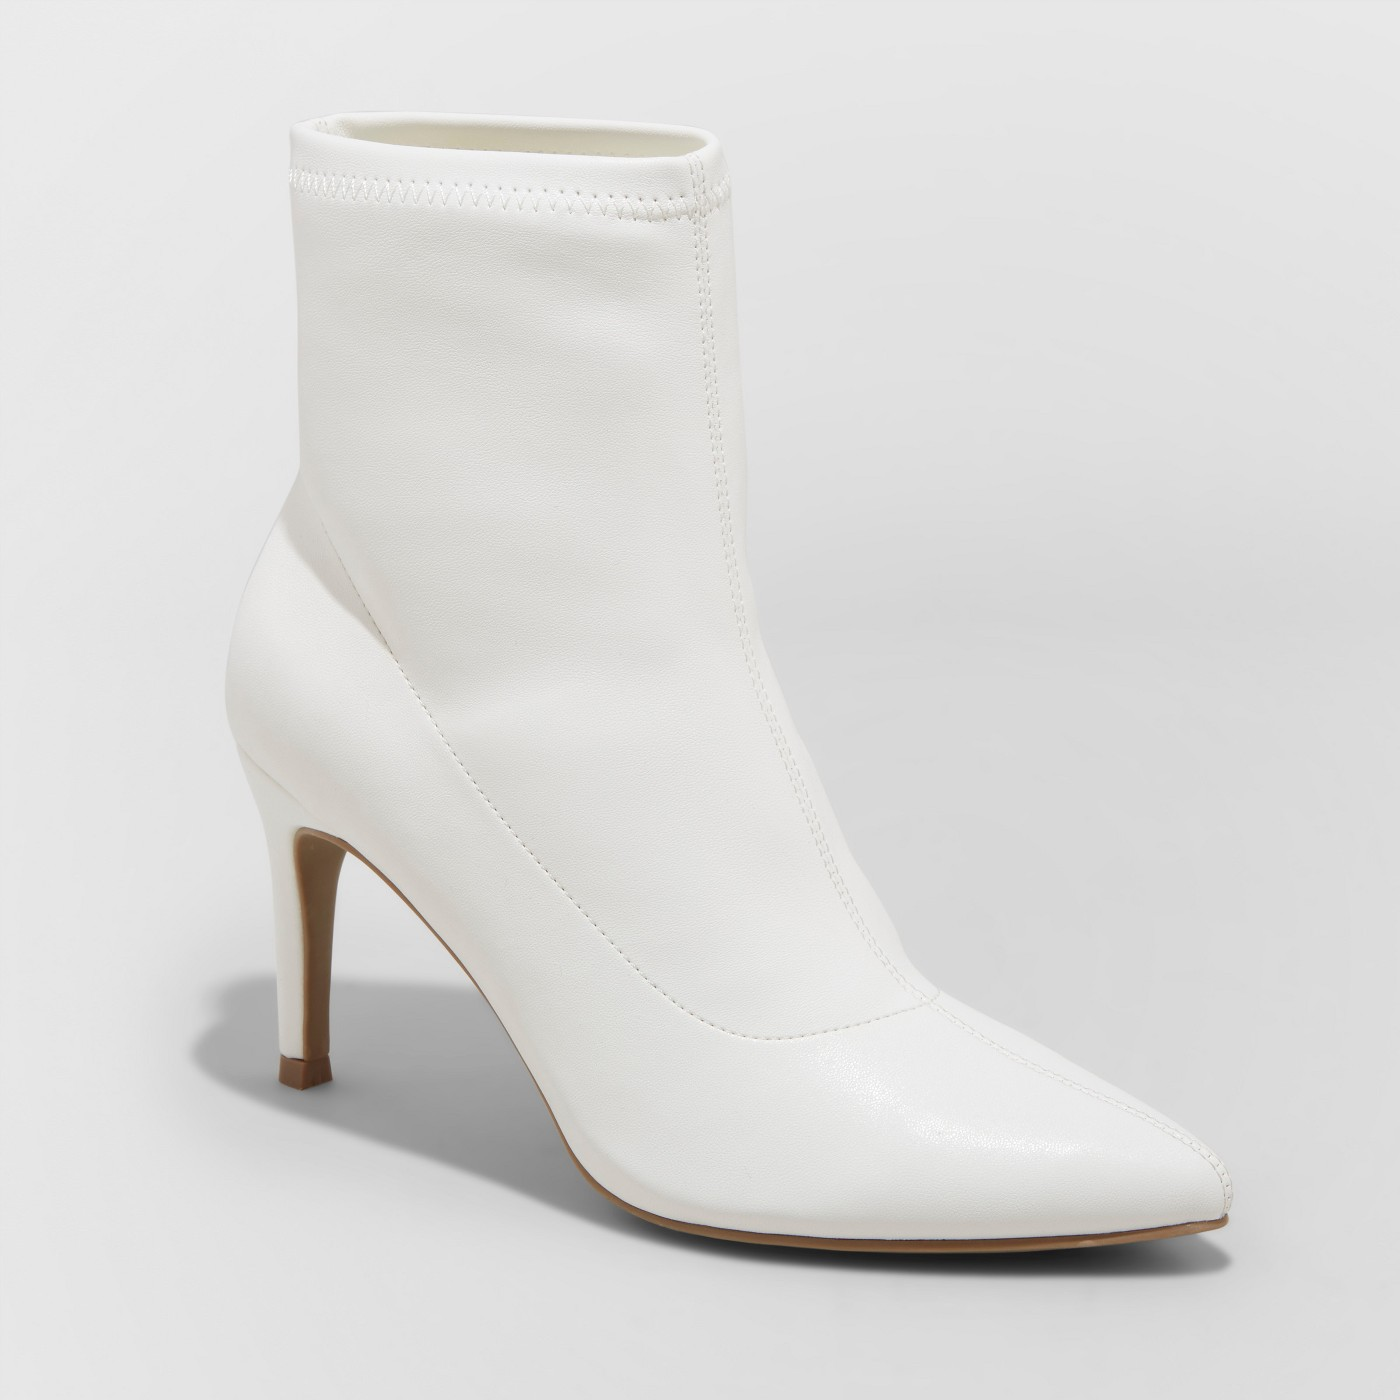 A New Day - Cody Stiletto Sock Booties, $37.99